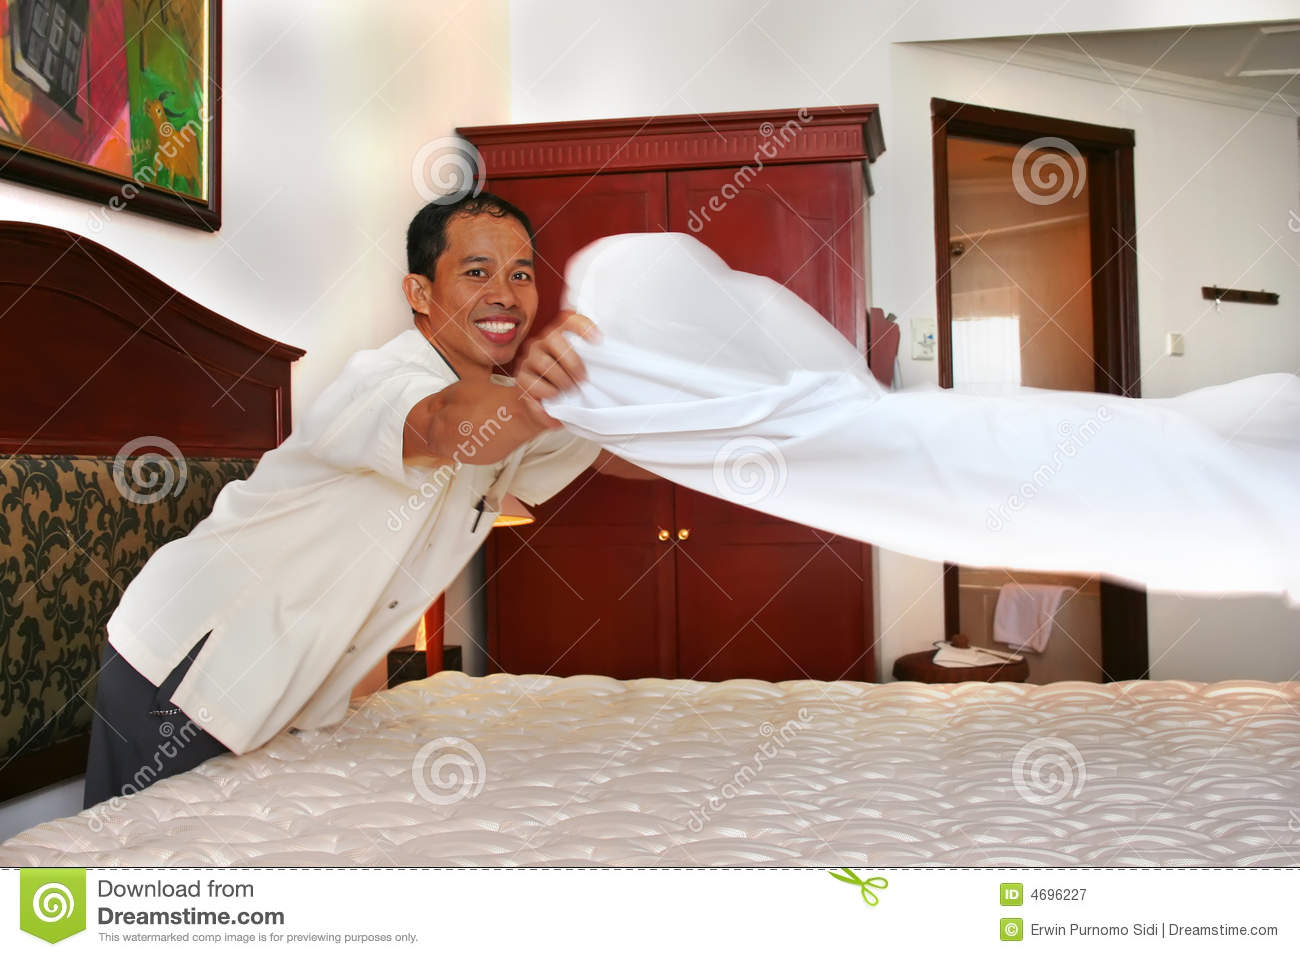 housekeeping or room boy with big smille royalty free stock pography